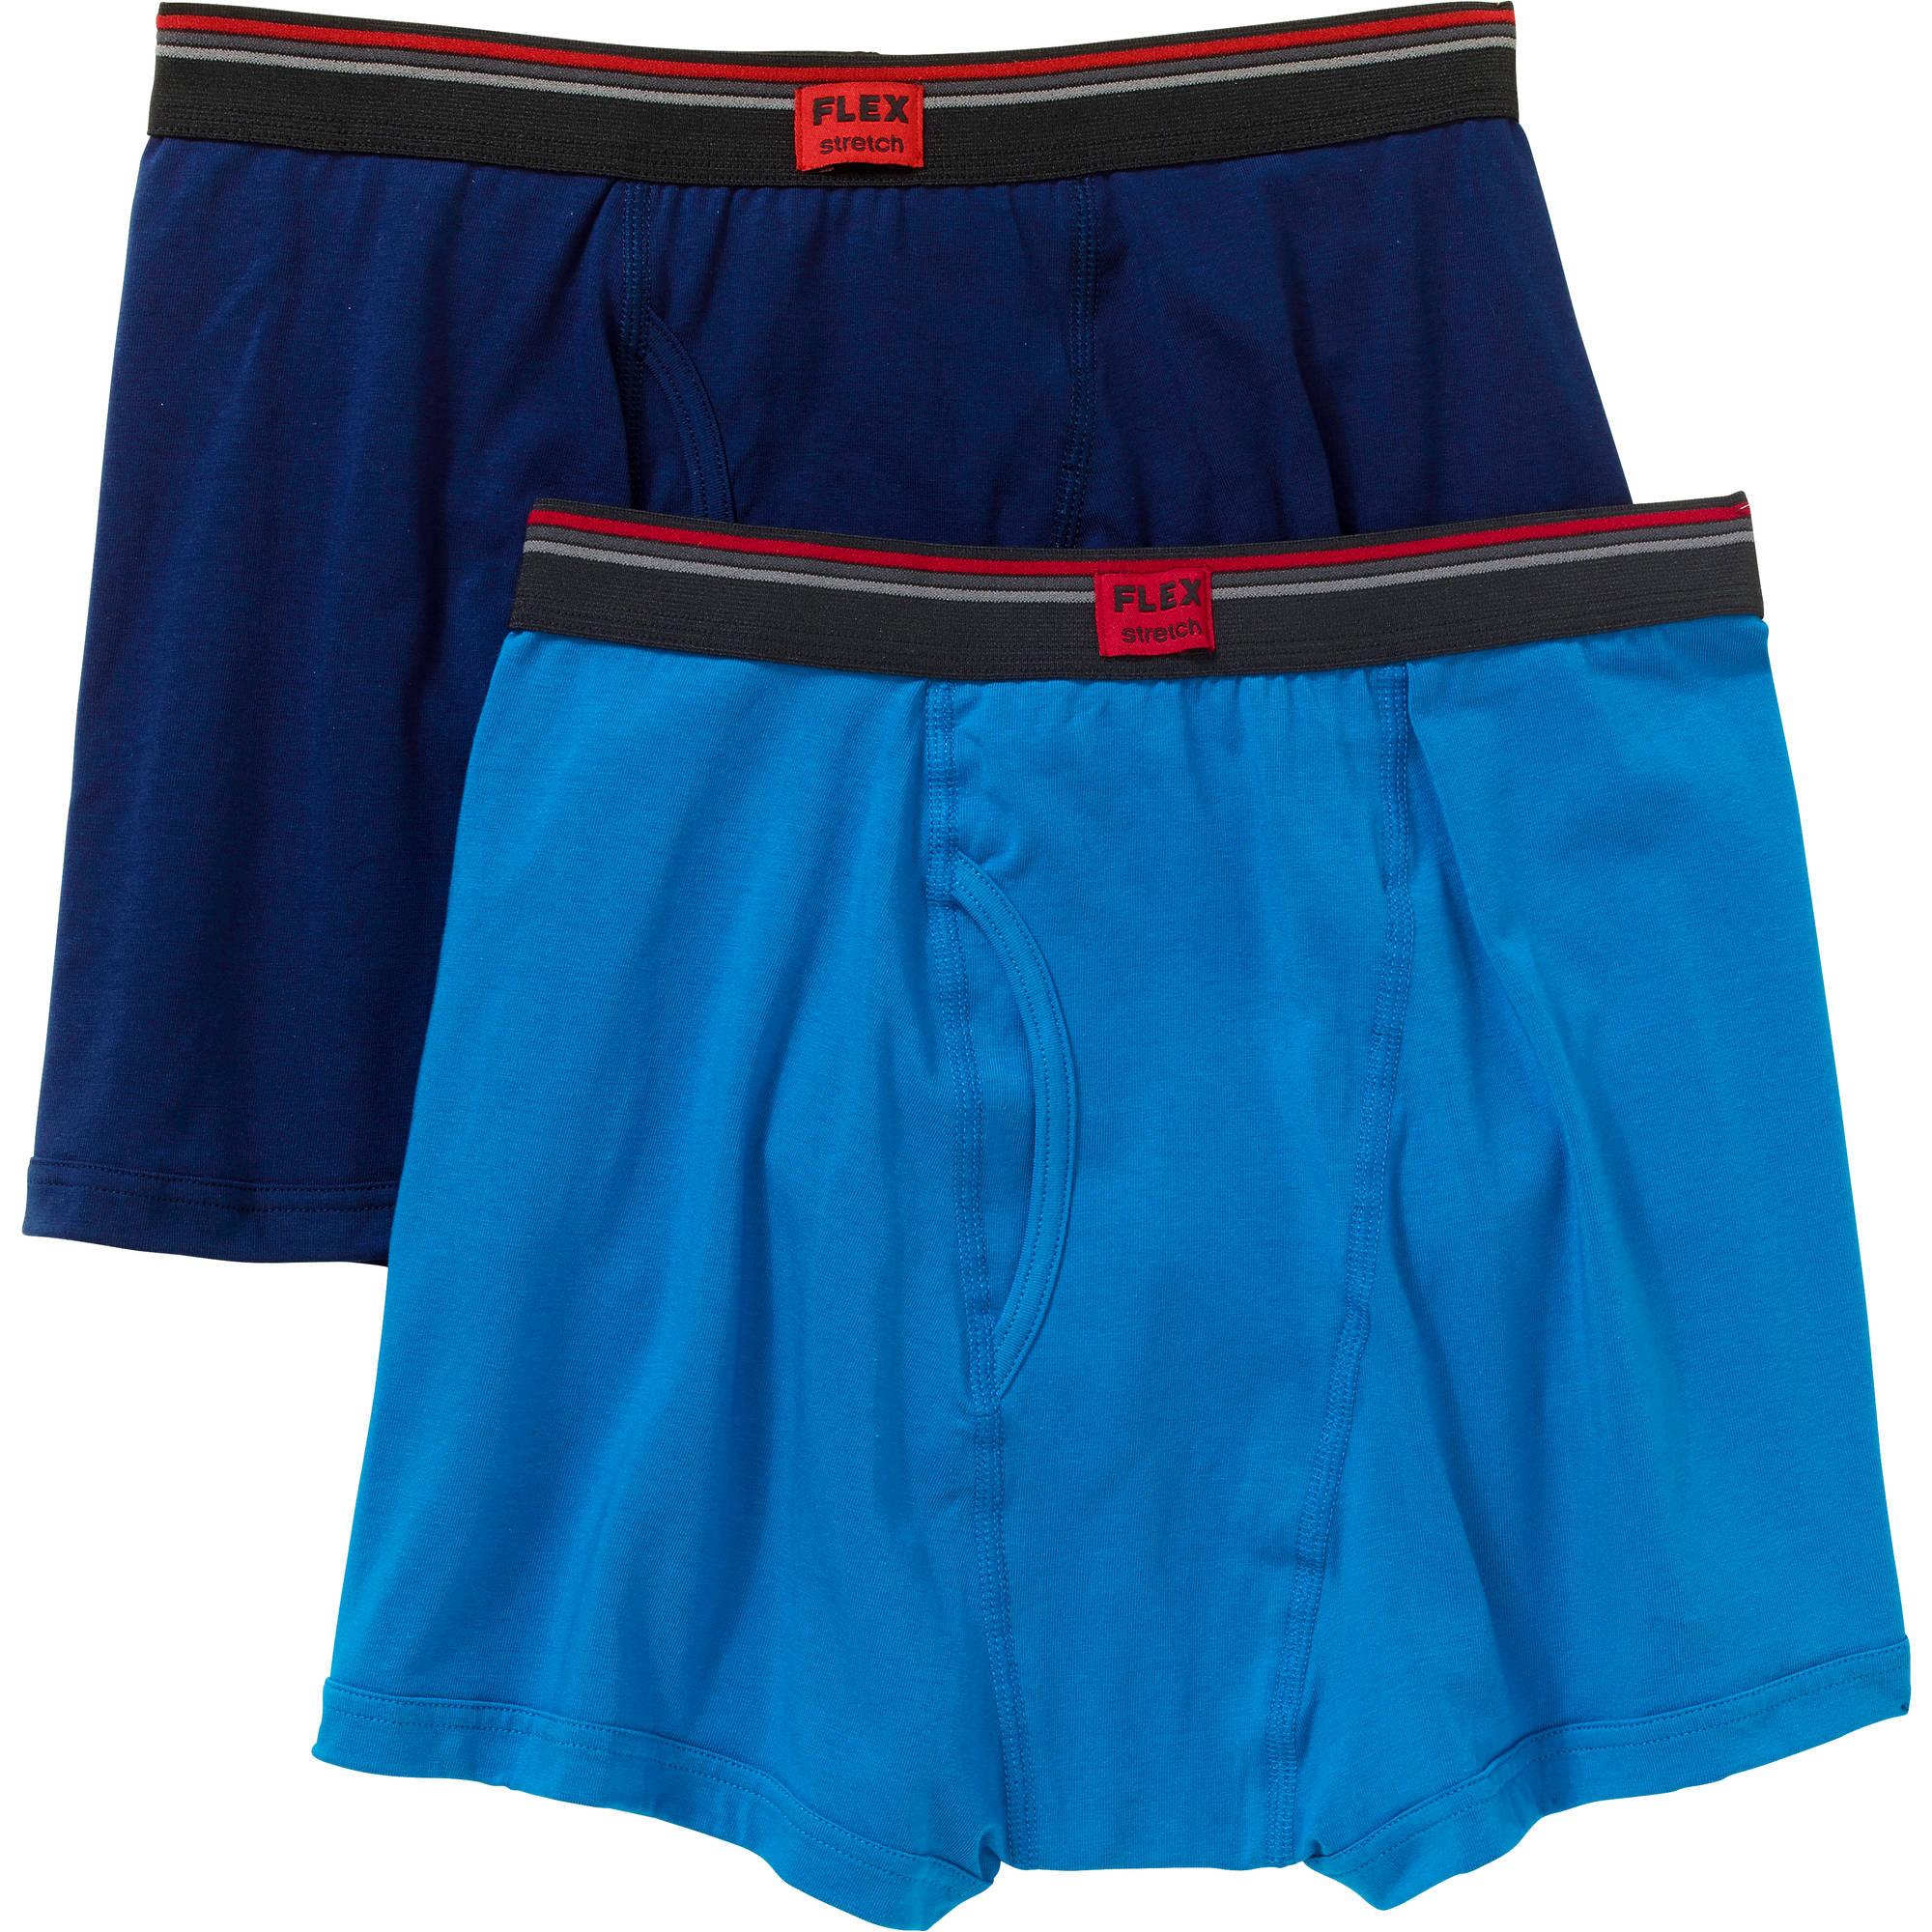 Life by Jockey Men's Boxer Briefs, 2-Pack